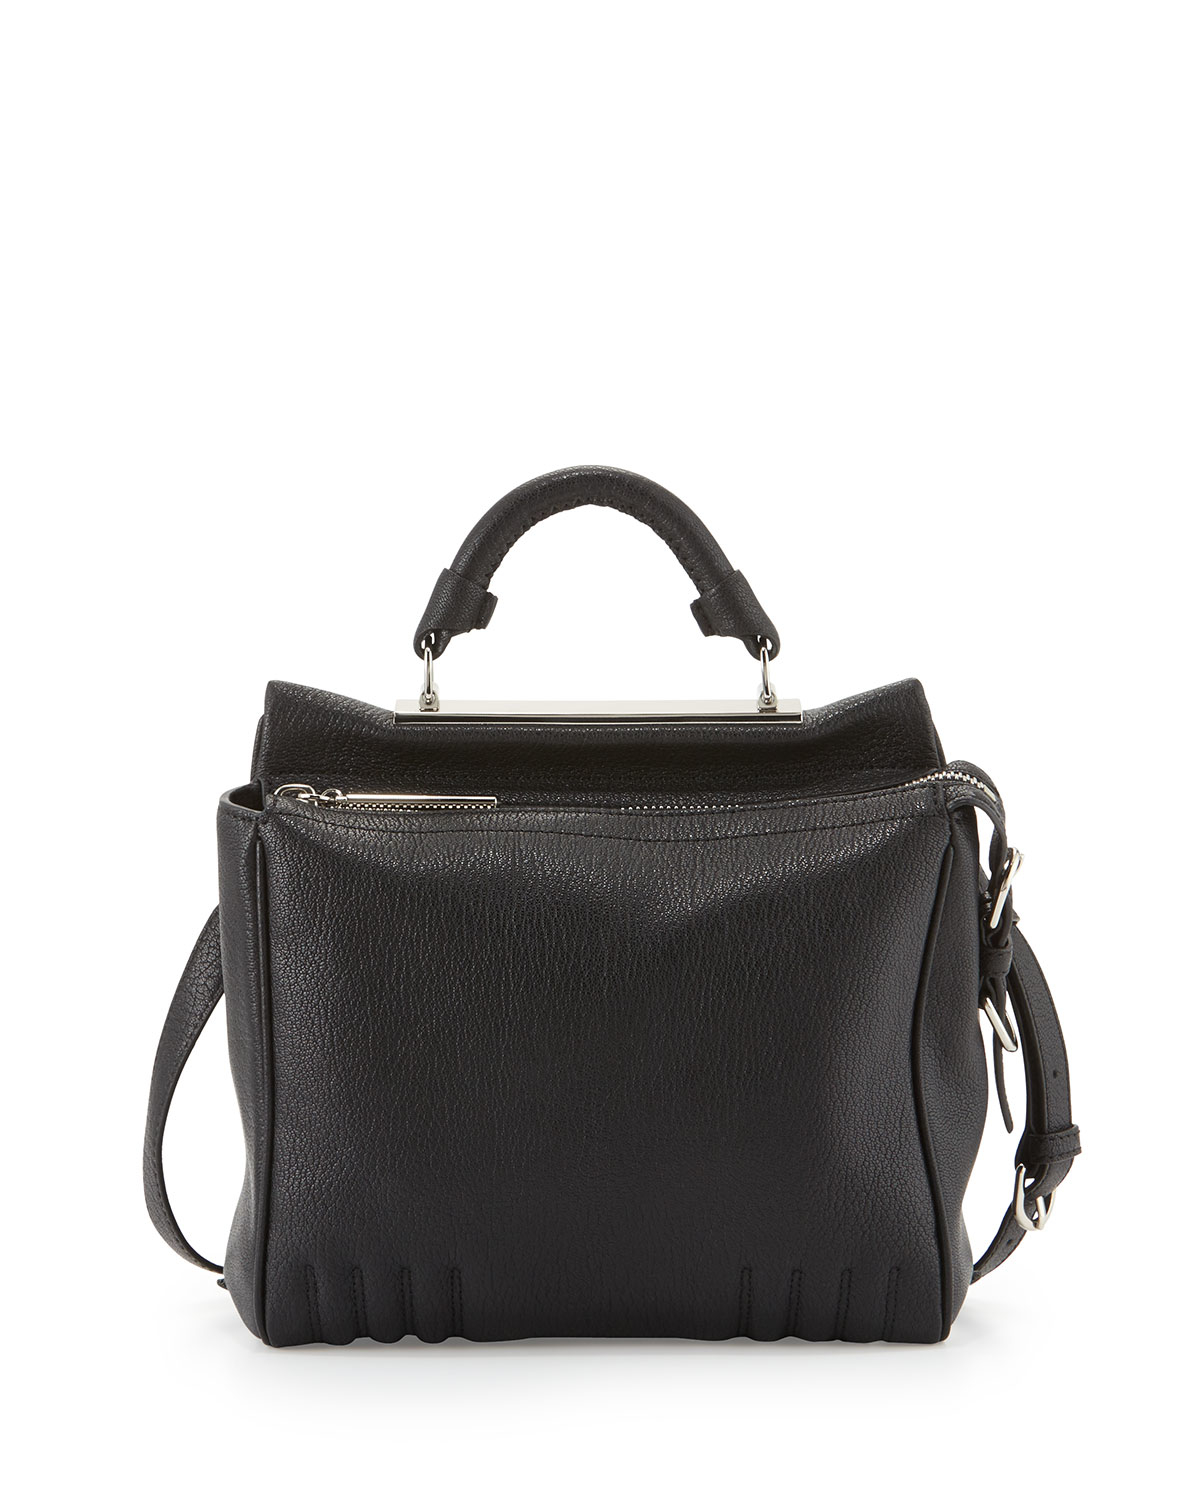 3.1 Phillip Lim 'Pashli' Bag...Anyone? - PurseForum